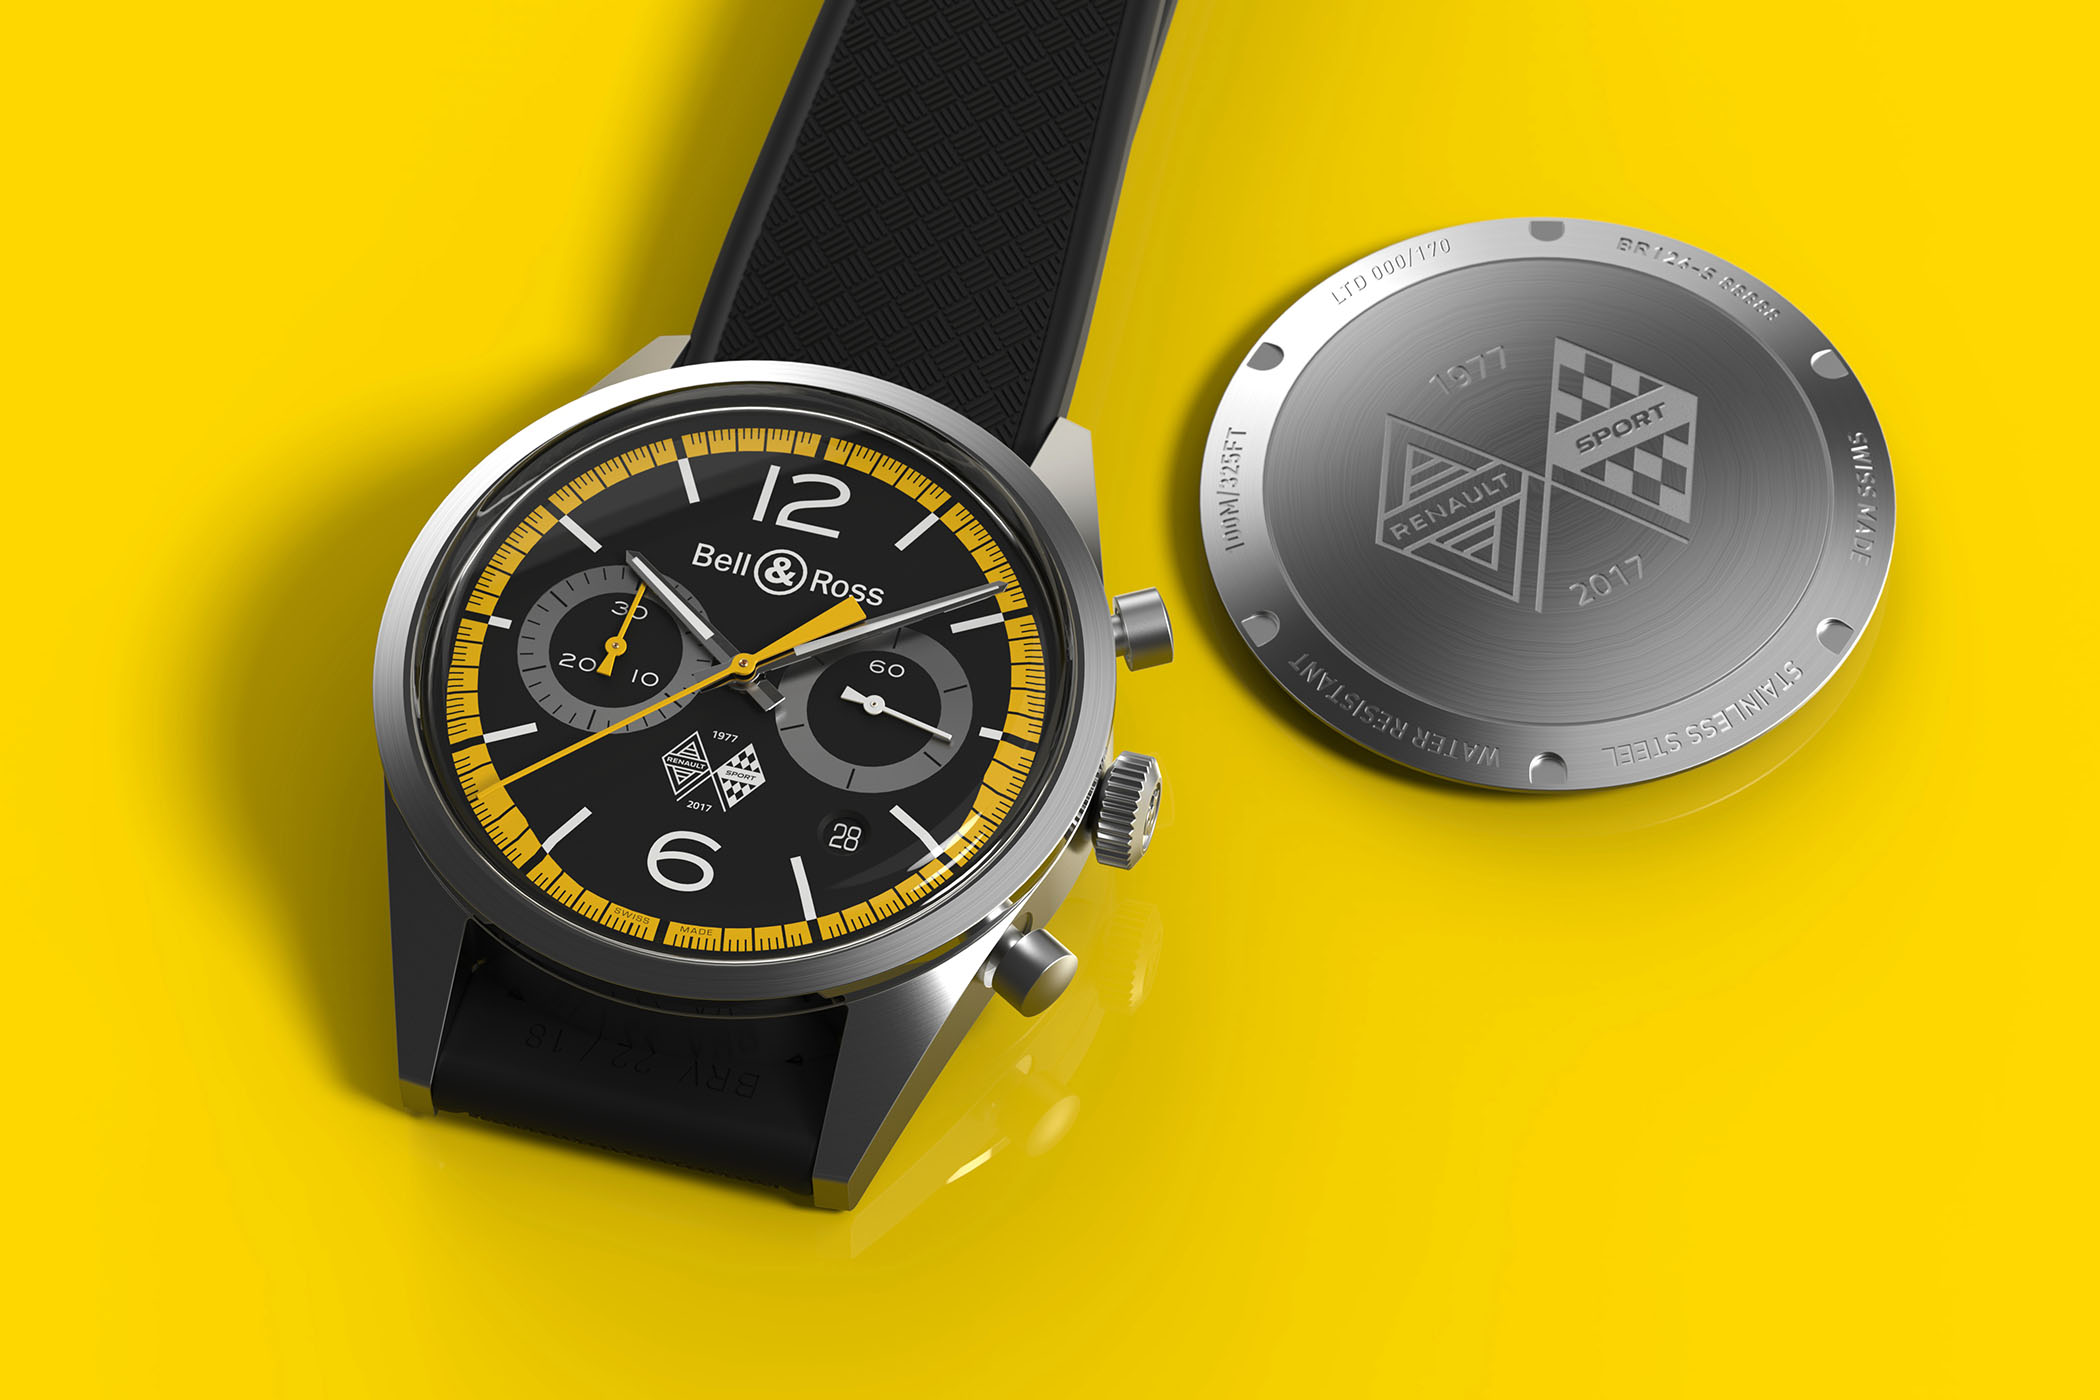 bell and ross BR126 Renault Sport 40th Anniversary